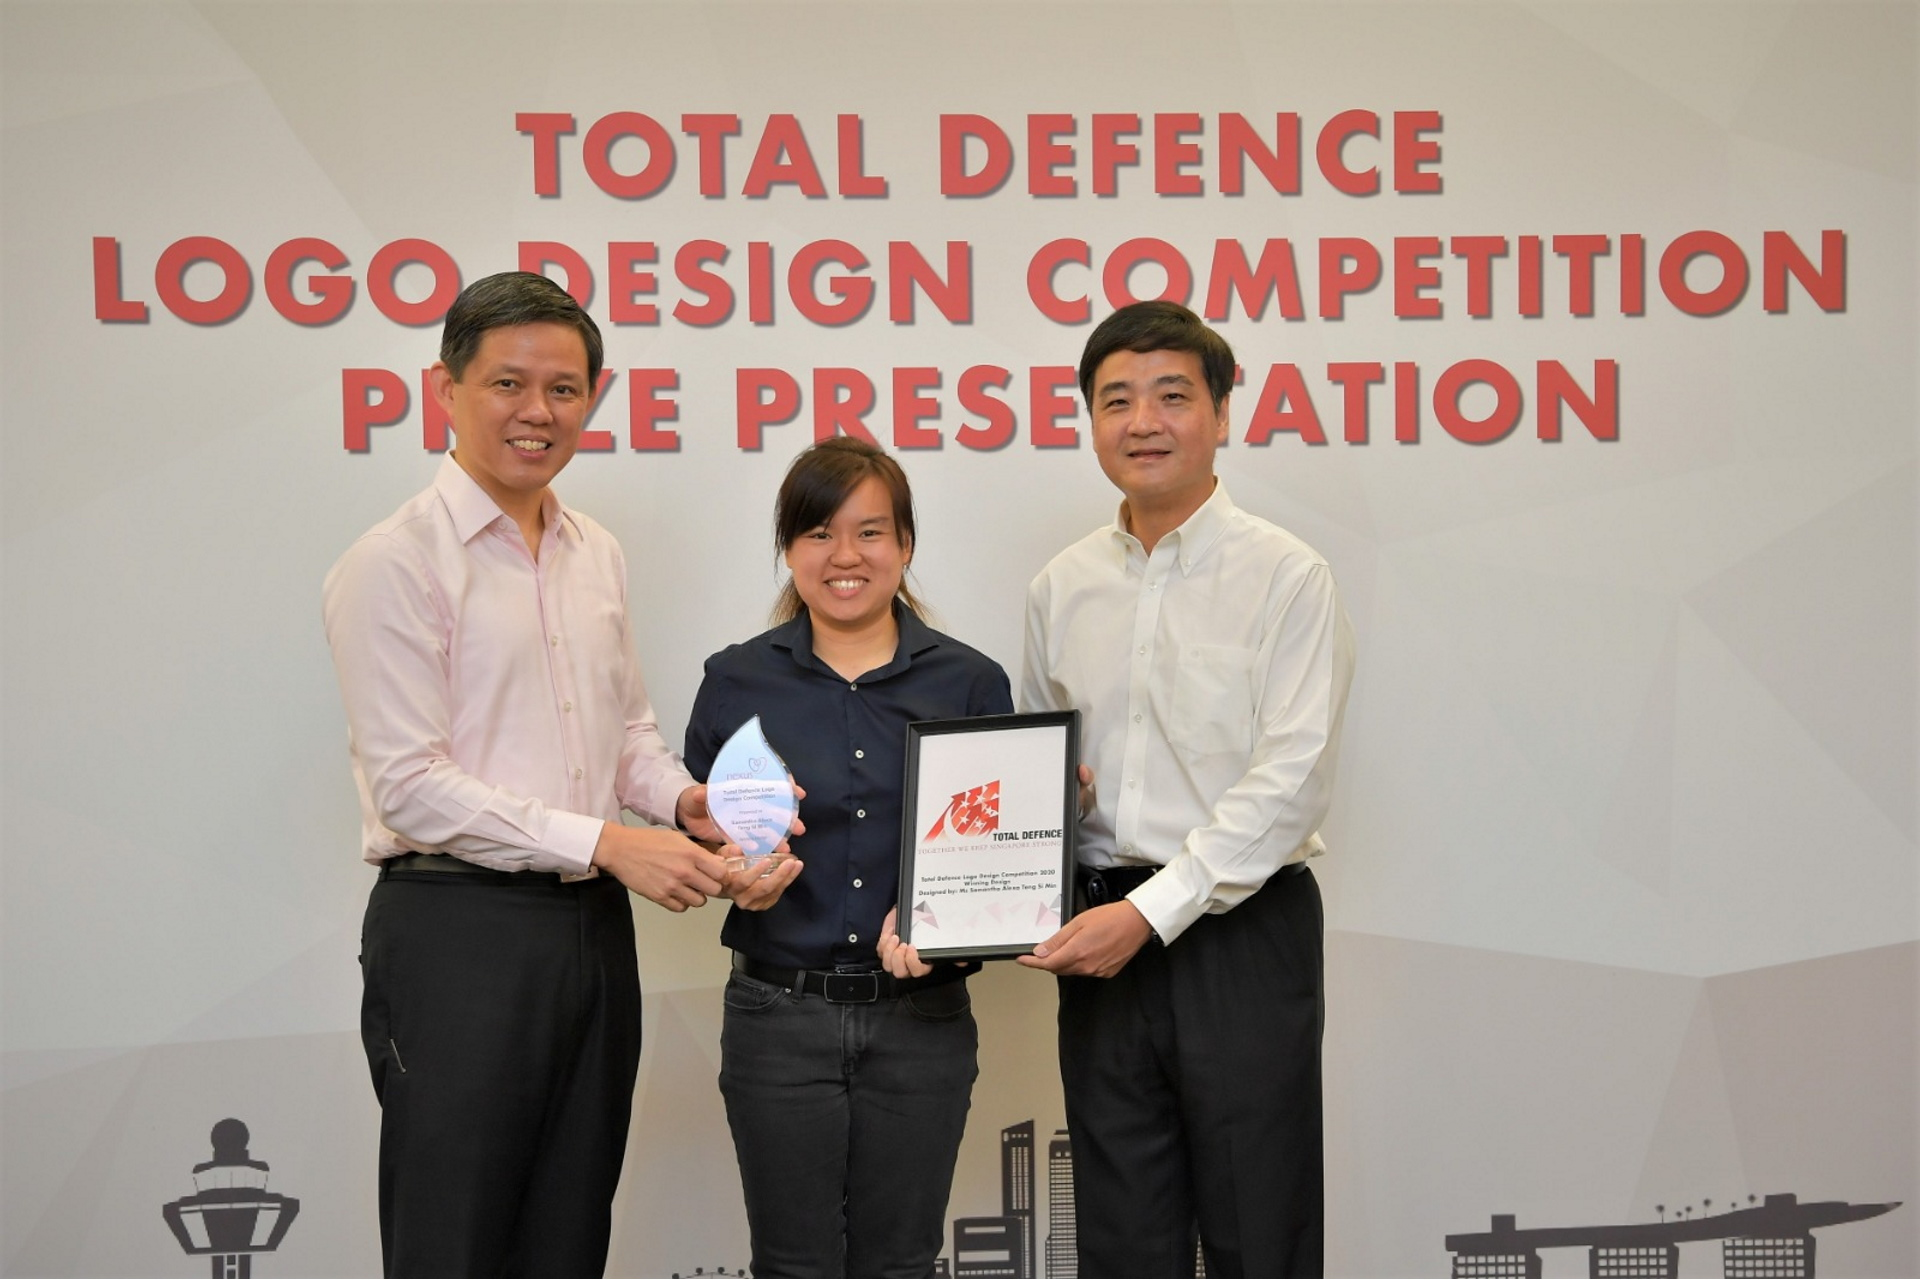 Mr Chan (left) and Senior Minister of State for Defence Mr Heng Chee How (right) presenting an award to the winner of the Total Defence Logo Design Competition, Ms Samantha Teng.